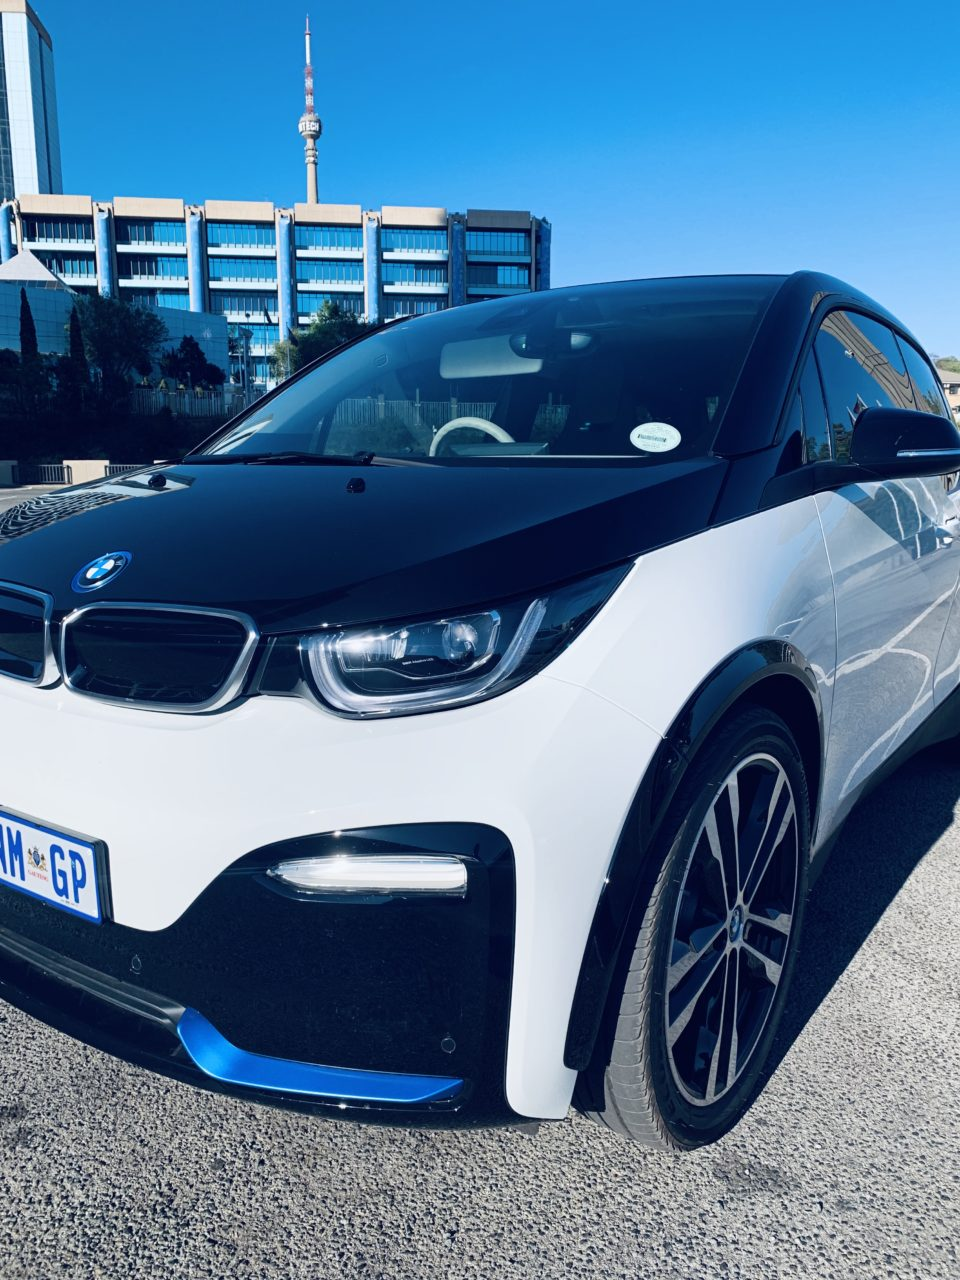 The BMW i3s, First world car, in a third world country.